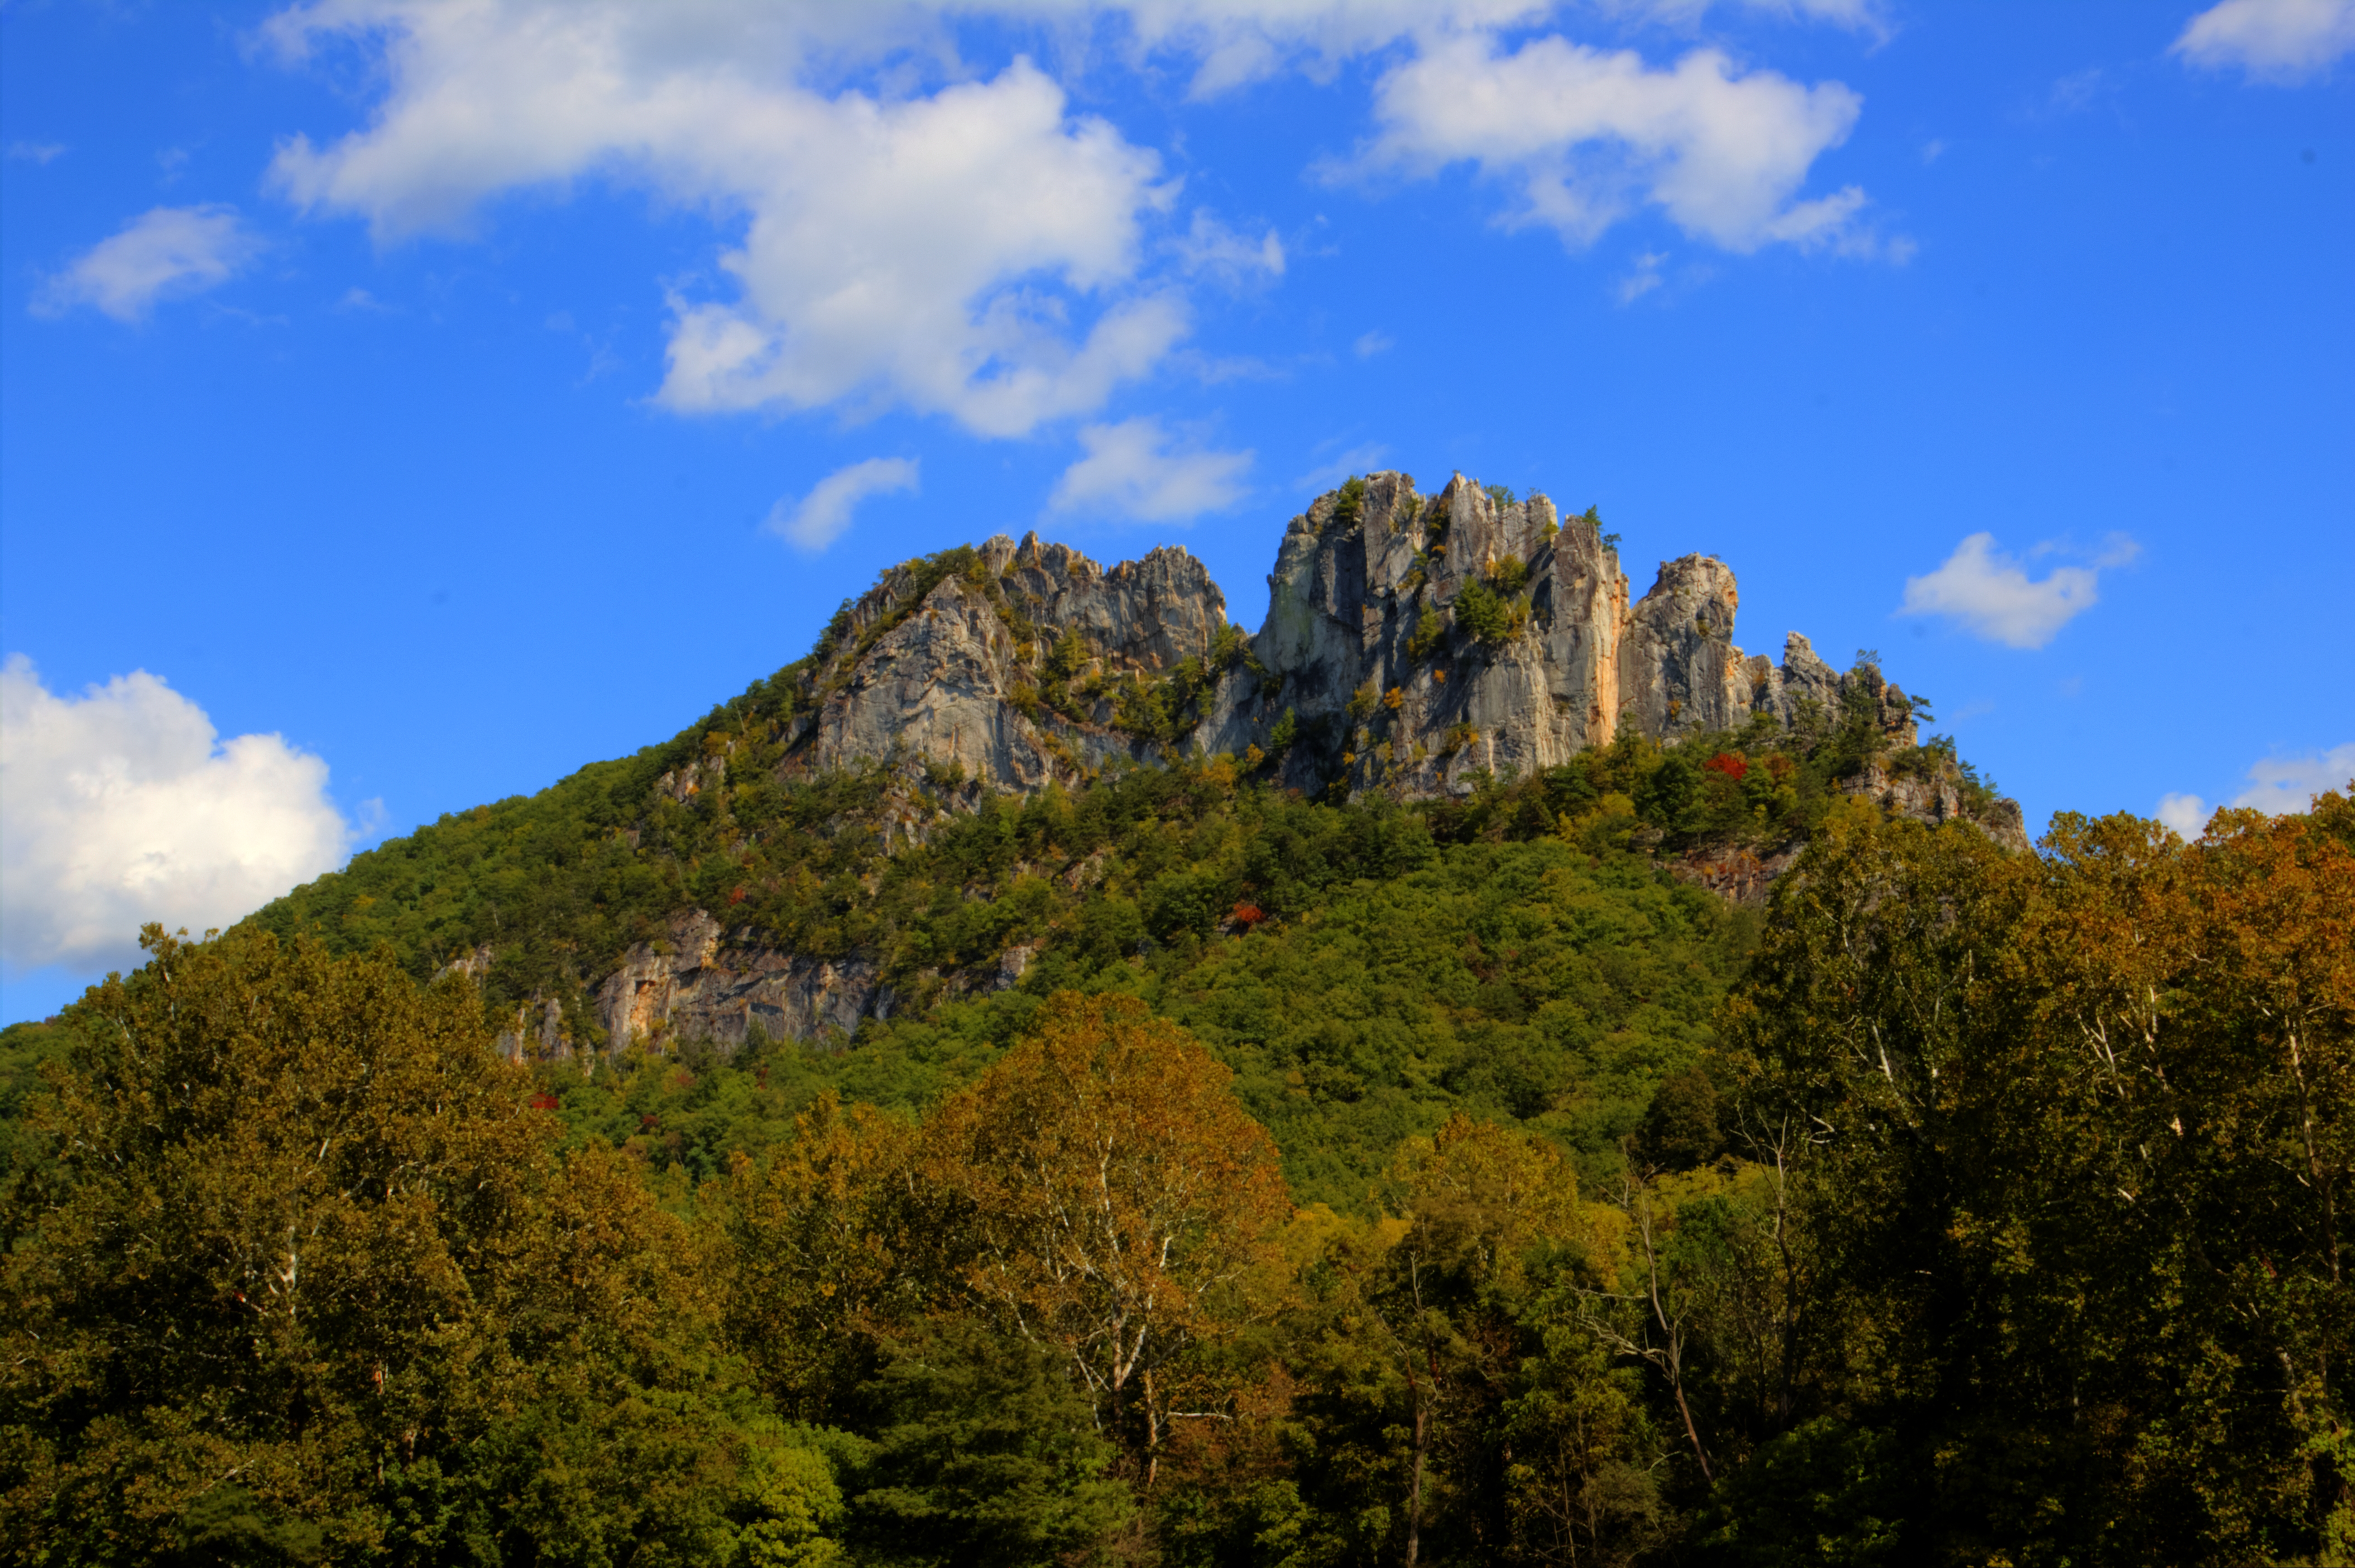 Seneca Rocks, Pendleton County, West Virginia. Photo taken on September 27, 2013. The image was created by merging seven different exposures with Photomatrix Pro software.